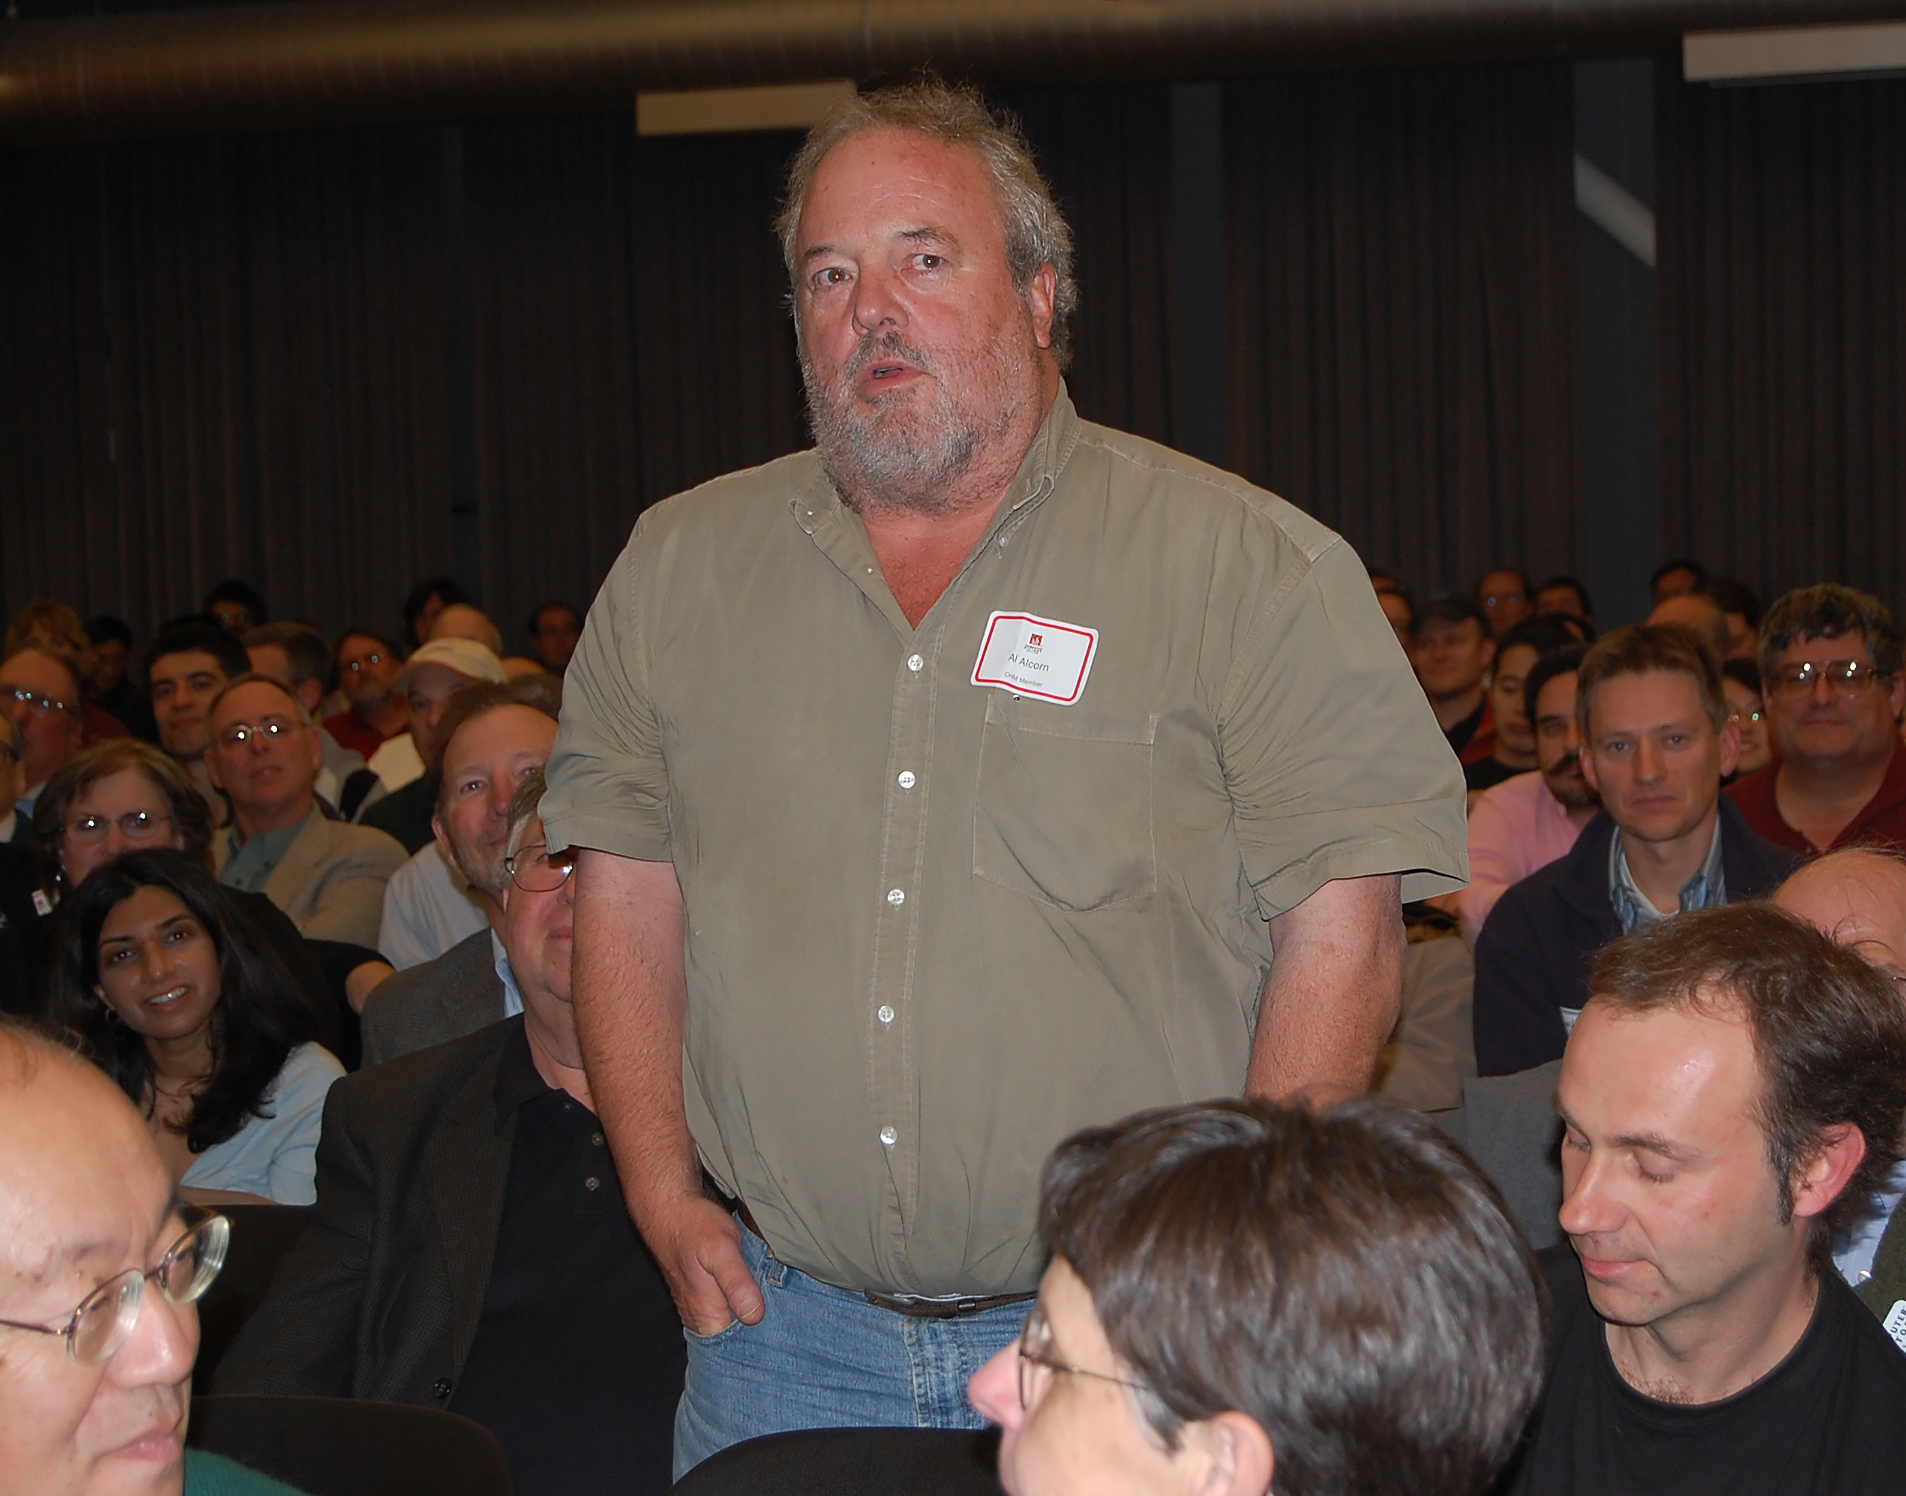 Al Alcorn, designer of first mass-produced arcade video game PONG, 2007